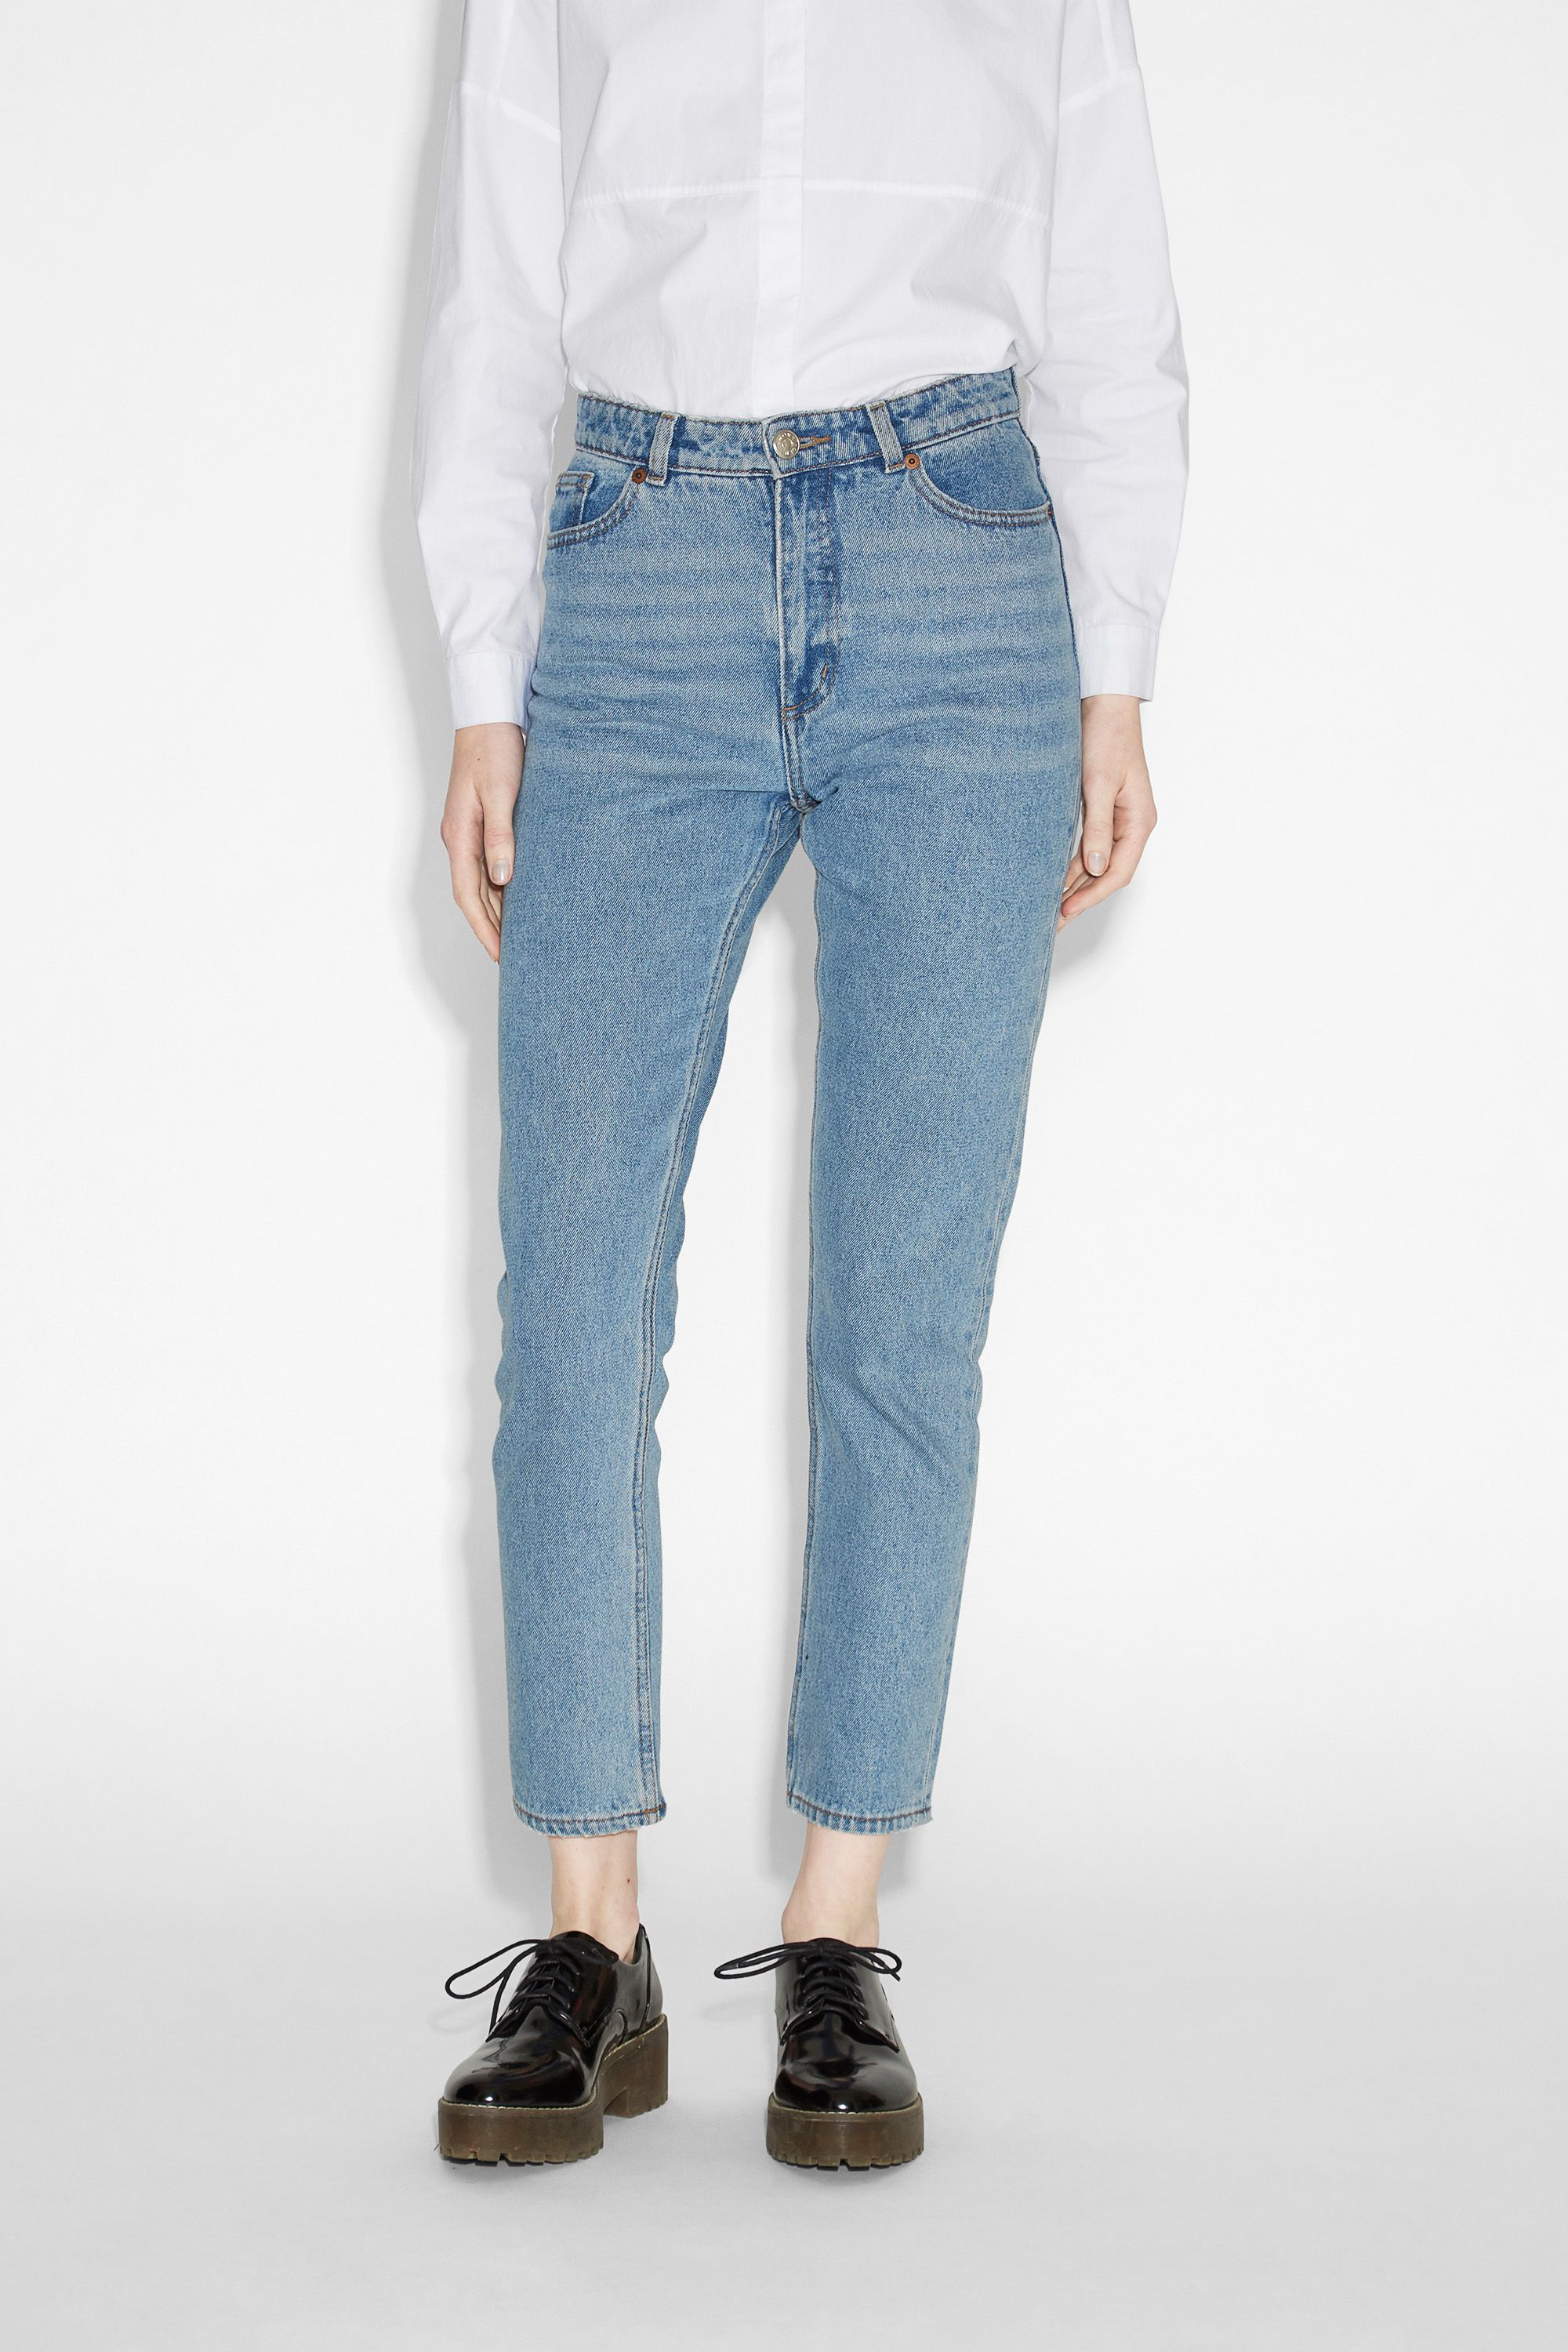 High-waisted, '90s fashion dream jeans. Classic cotton with a (slightly) tapered…